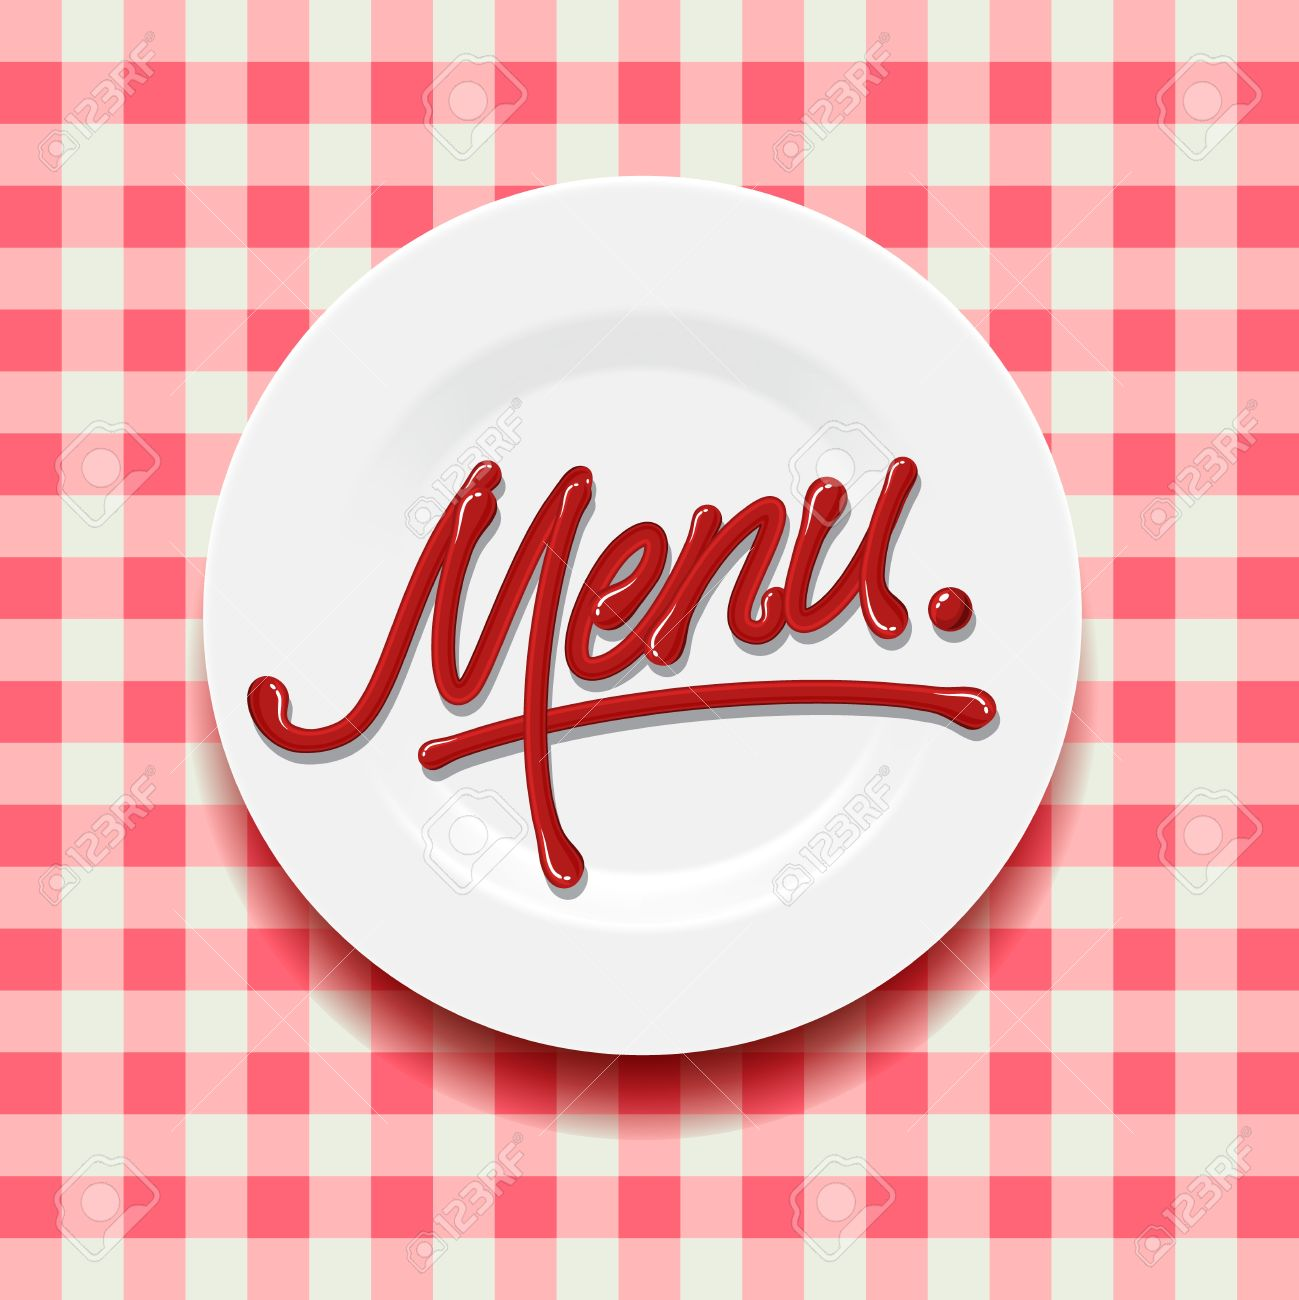 word menu - made with red sauce on plate royalty free cliparts